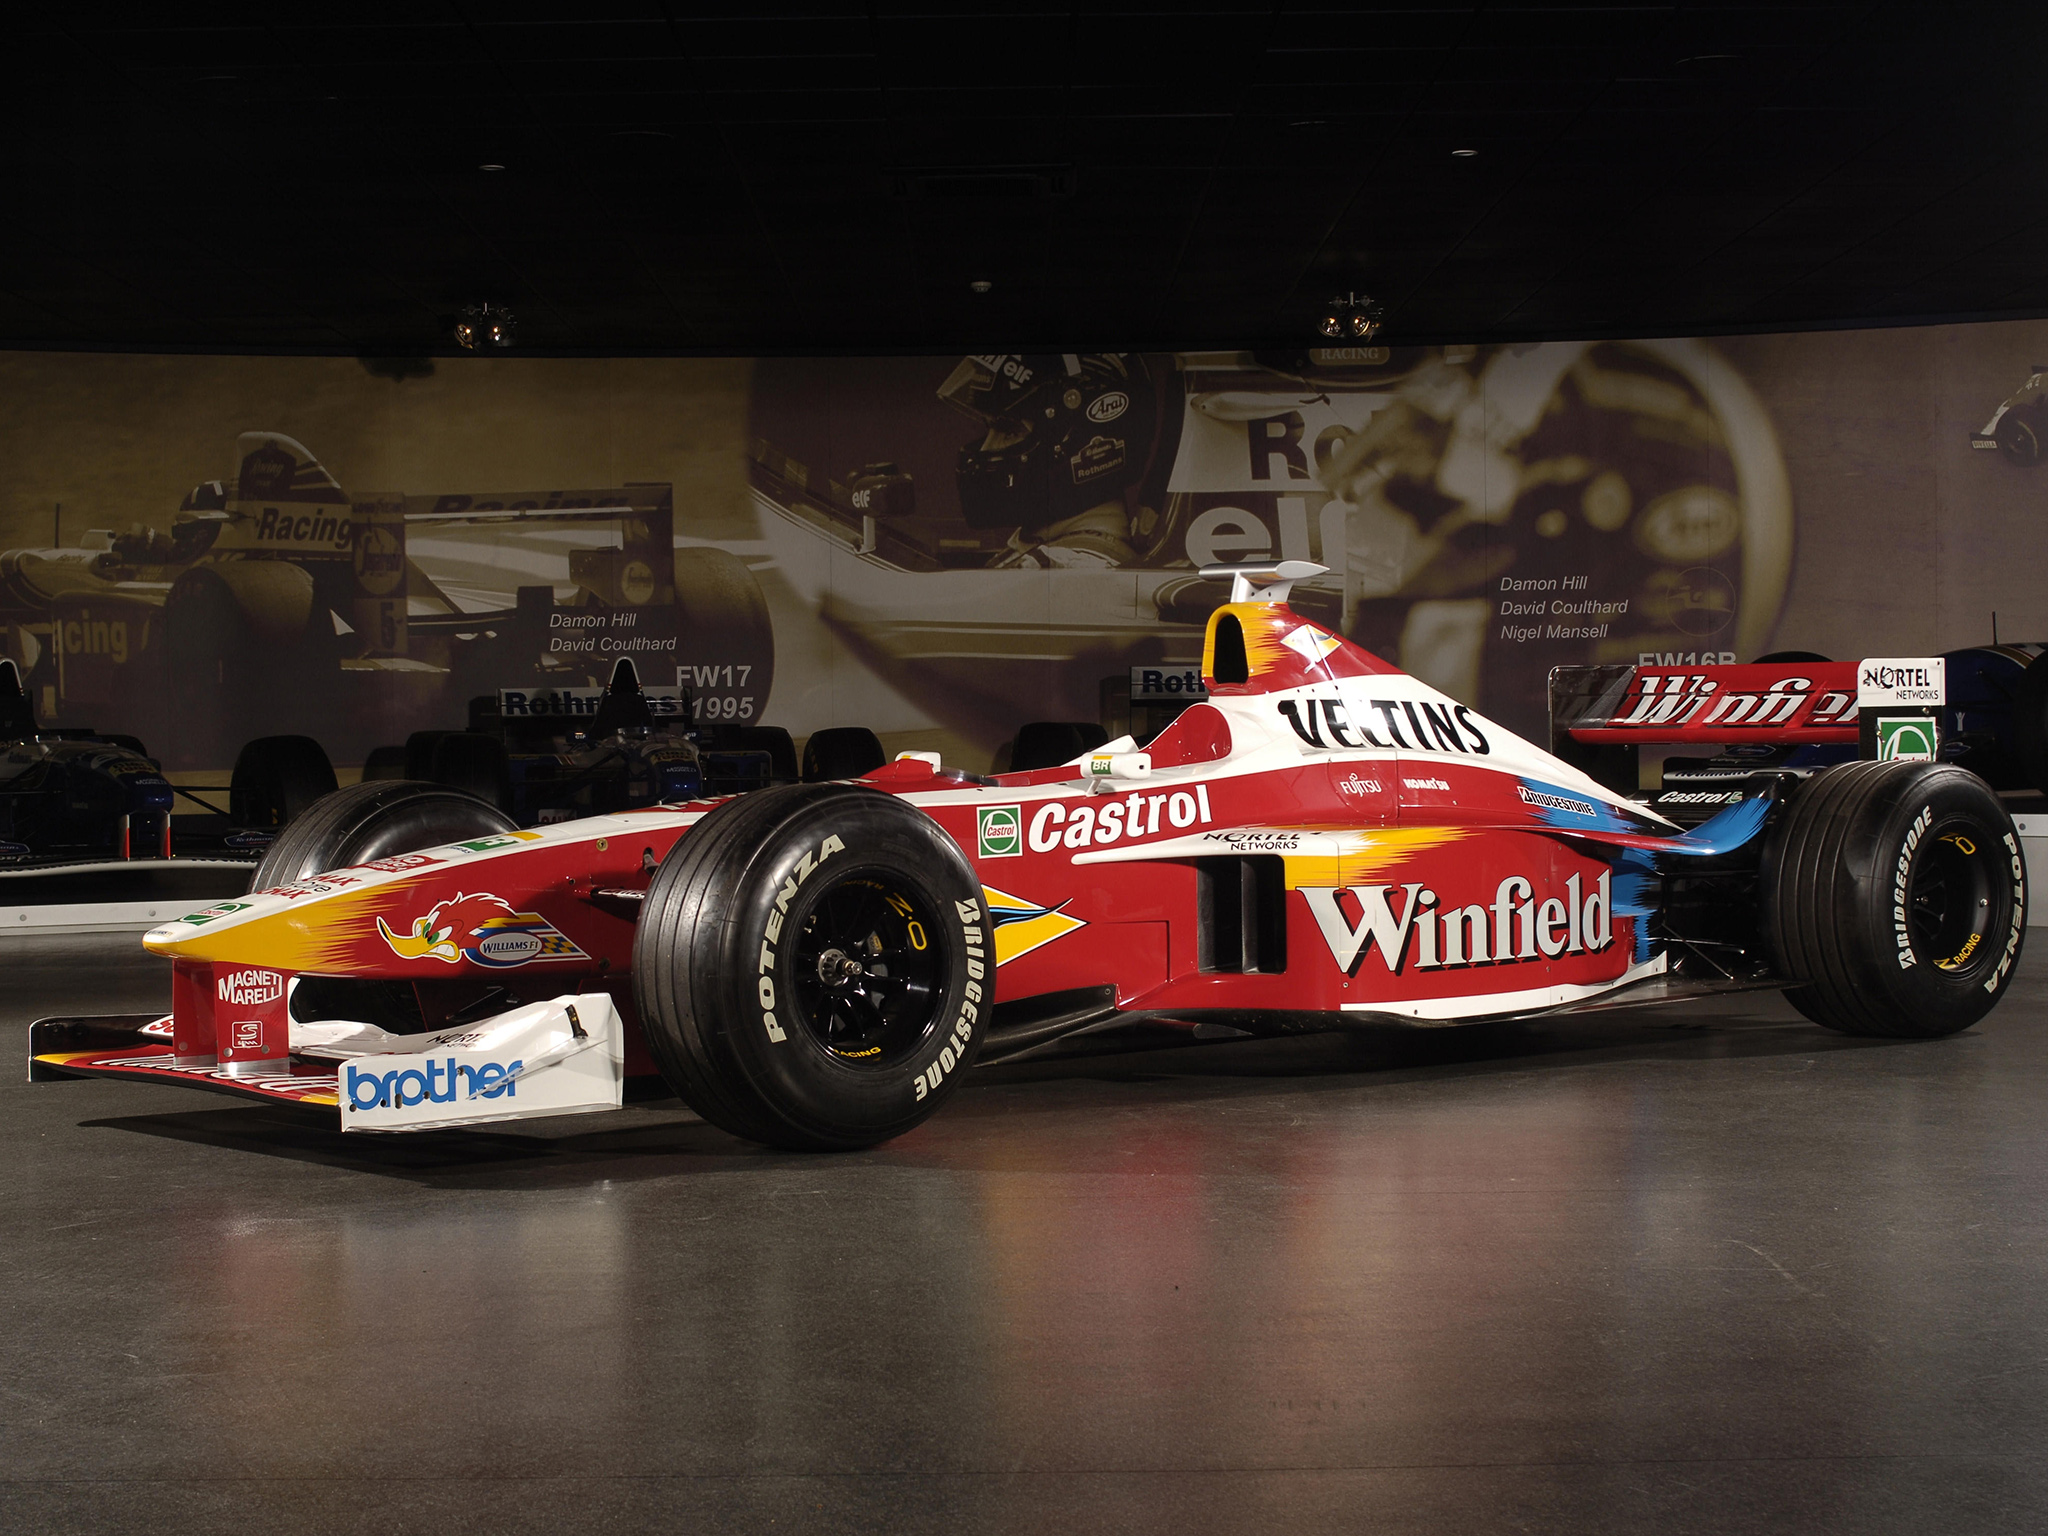 Williams FW21